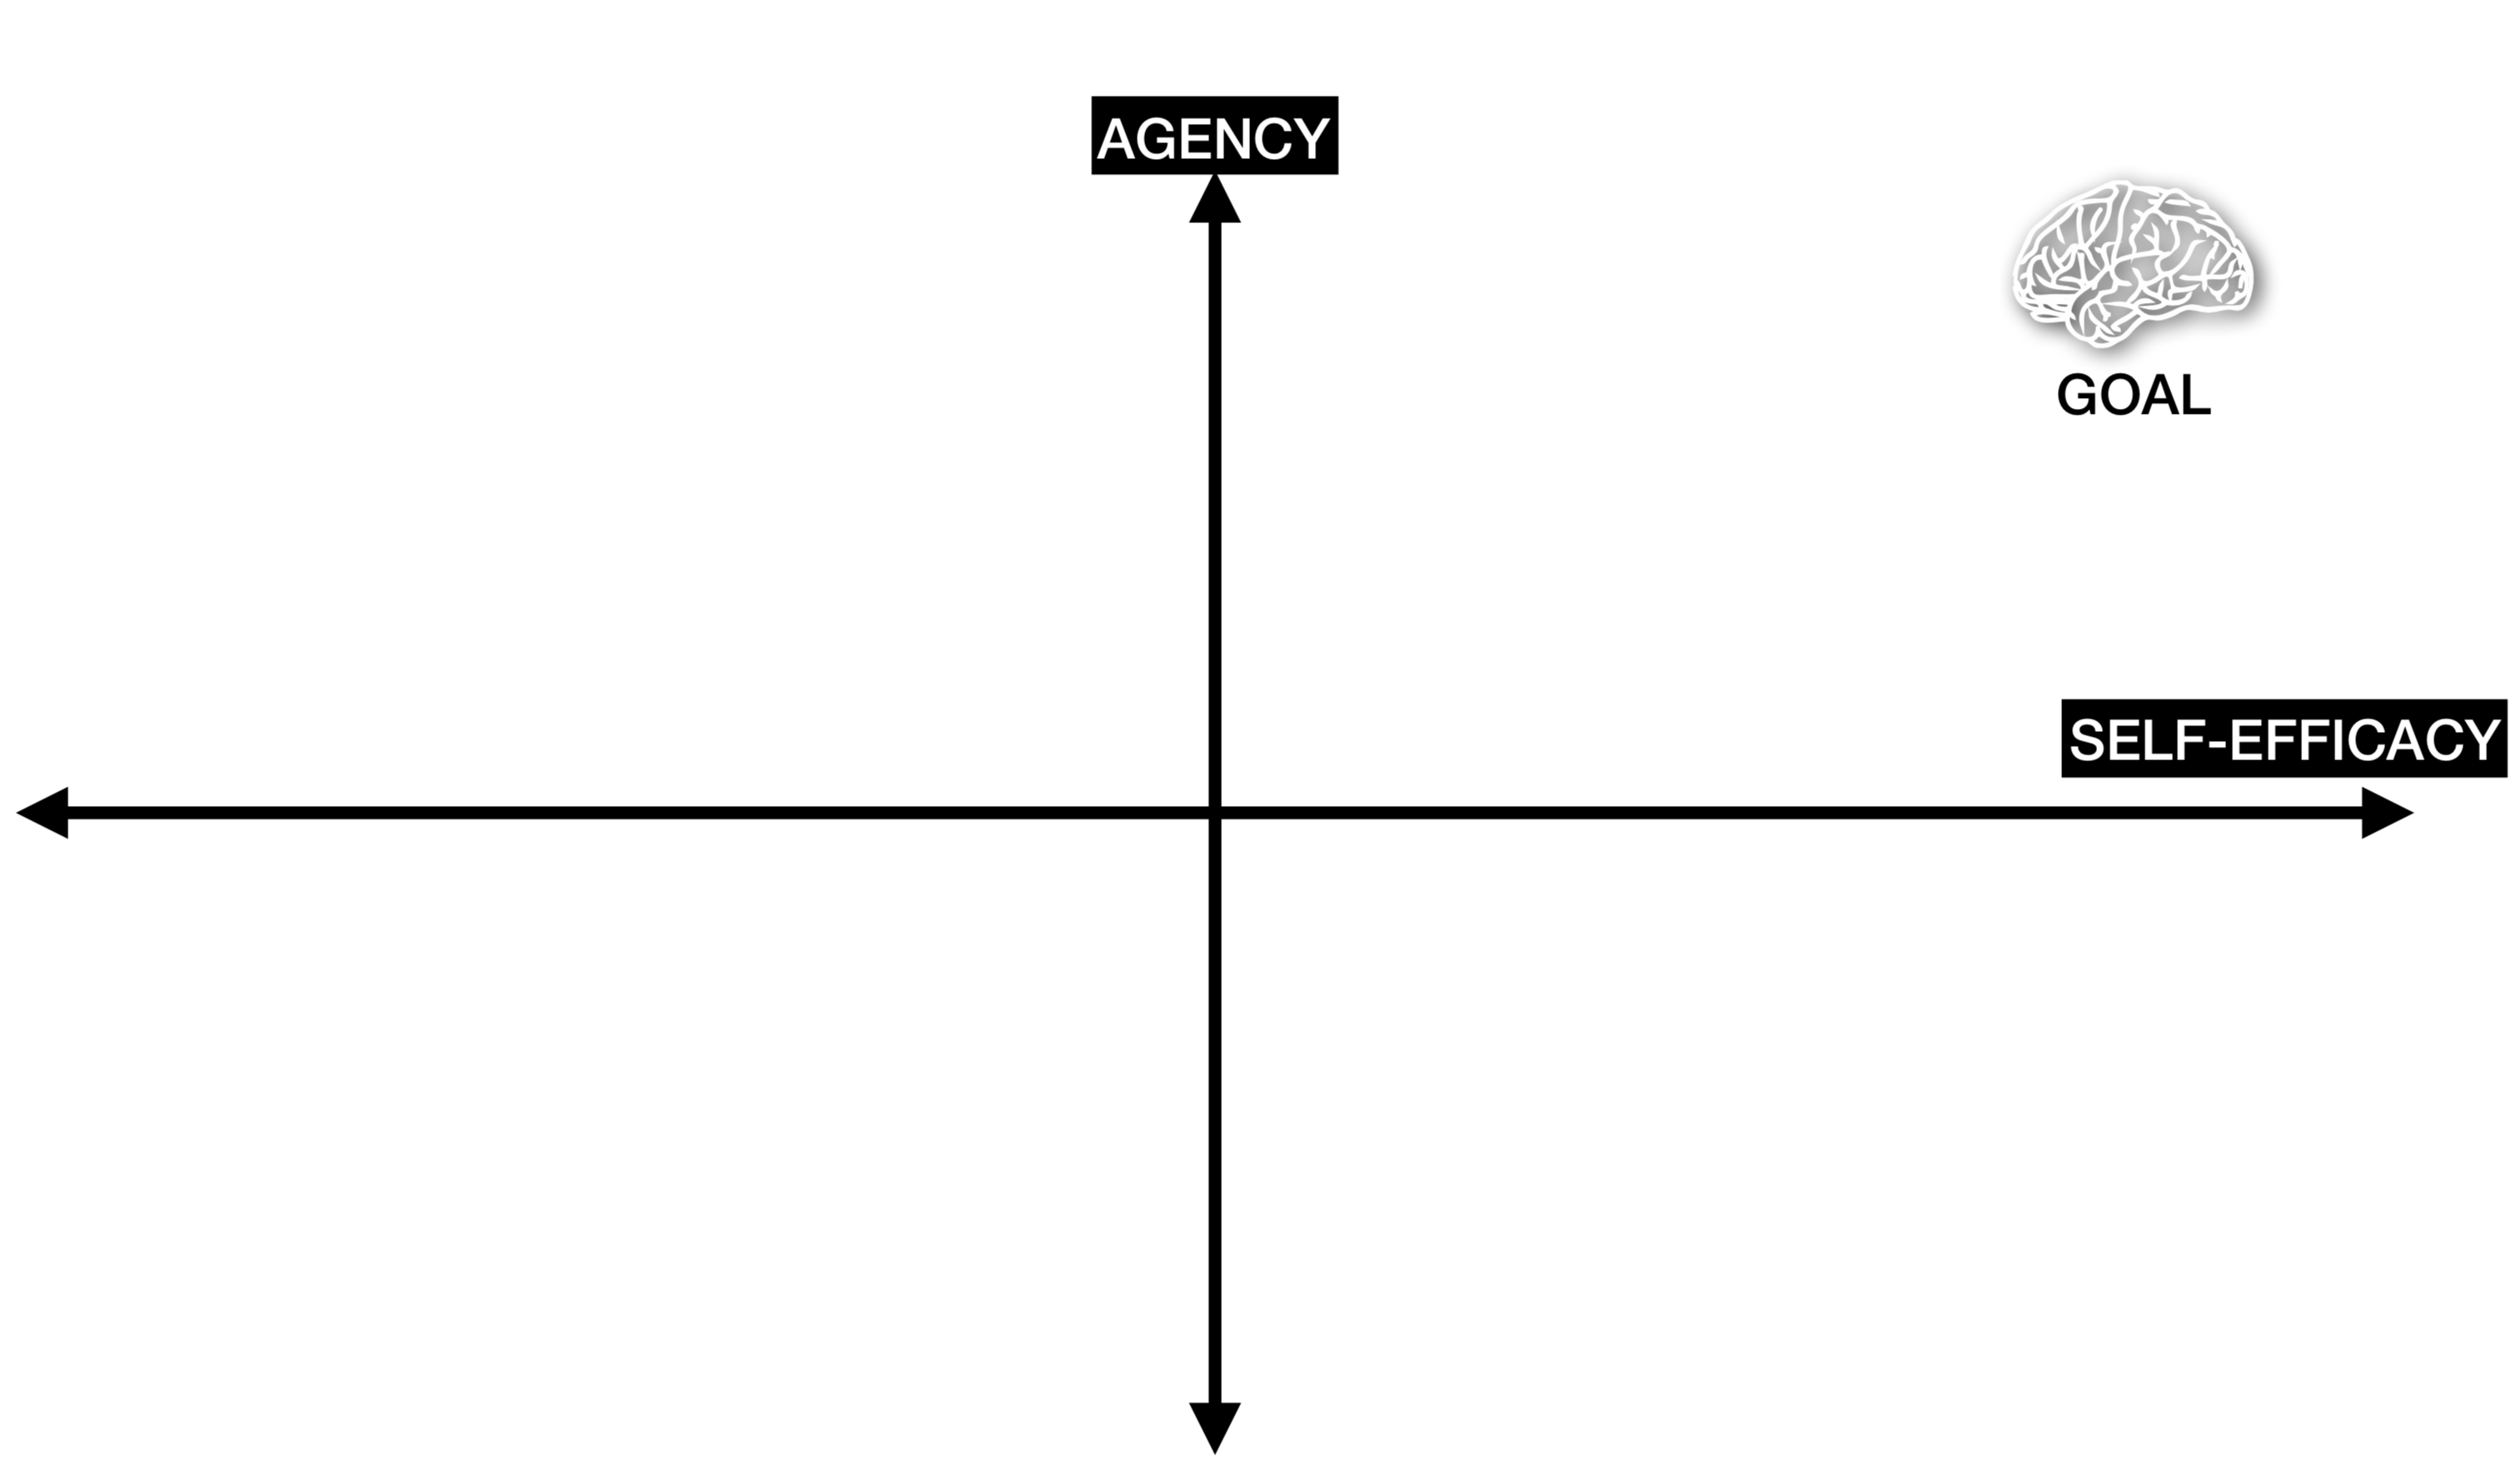 agencychart.png